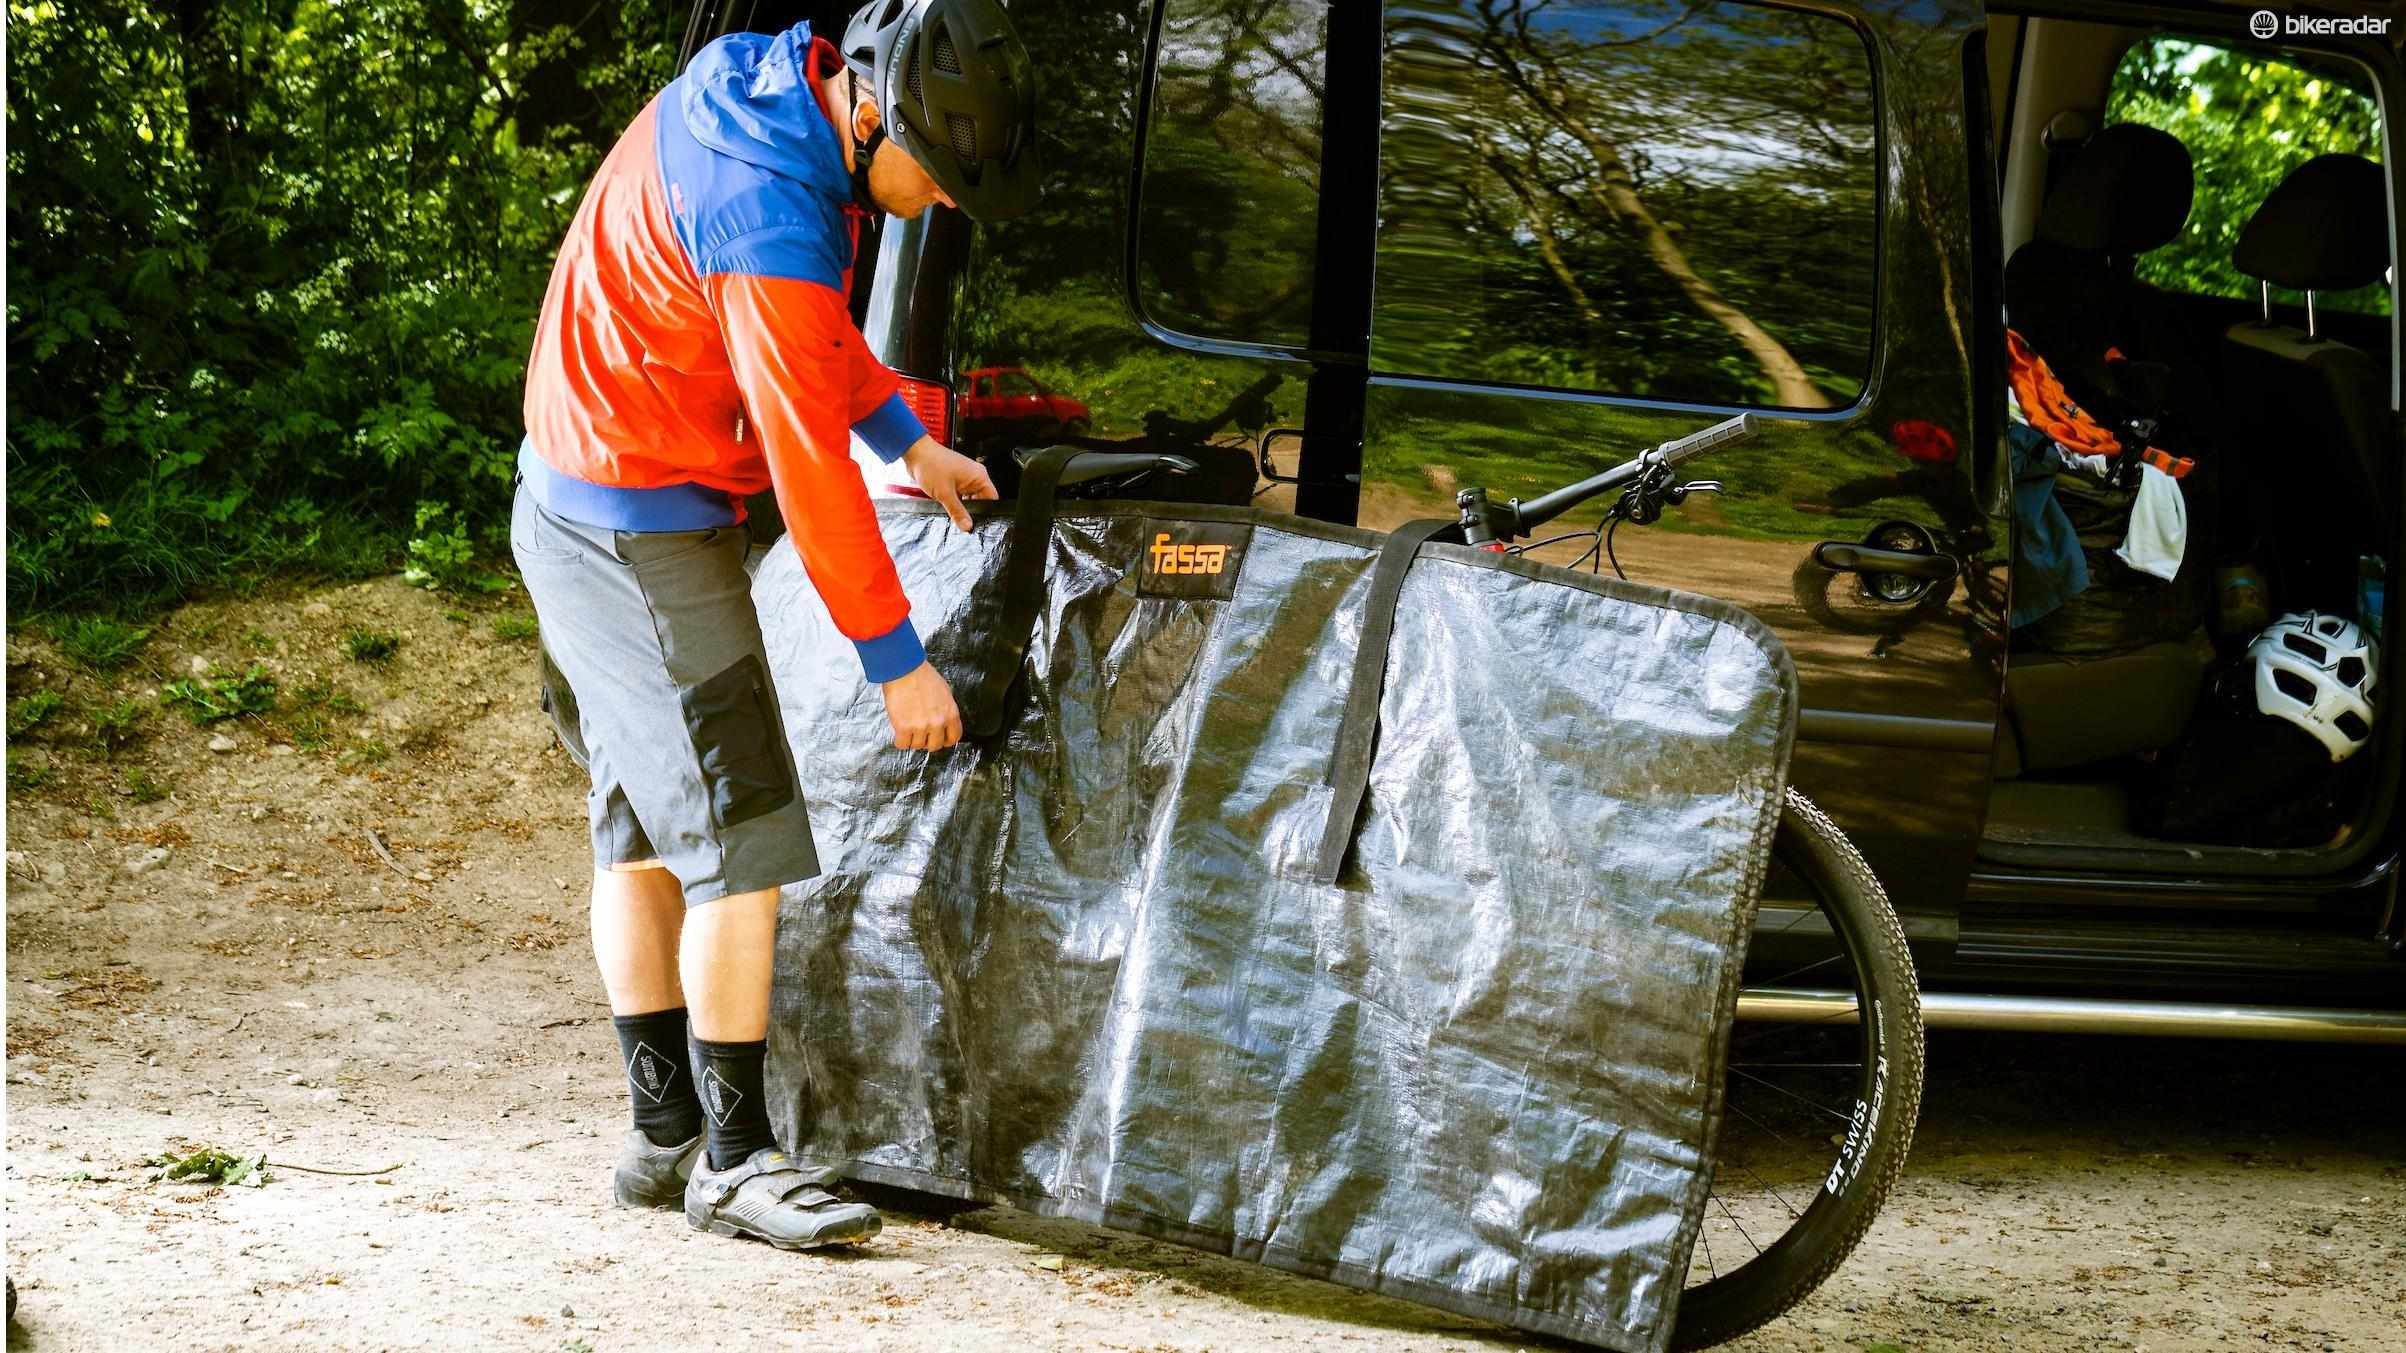 The size means it easily covers all the important bits of your bike